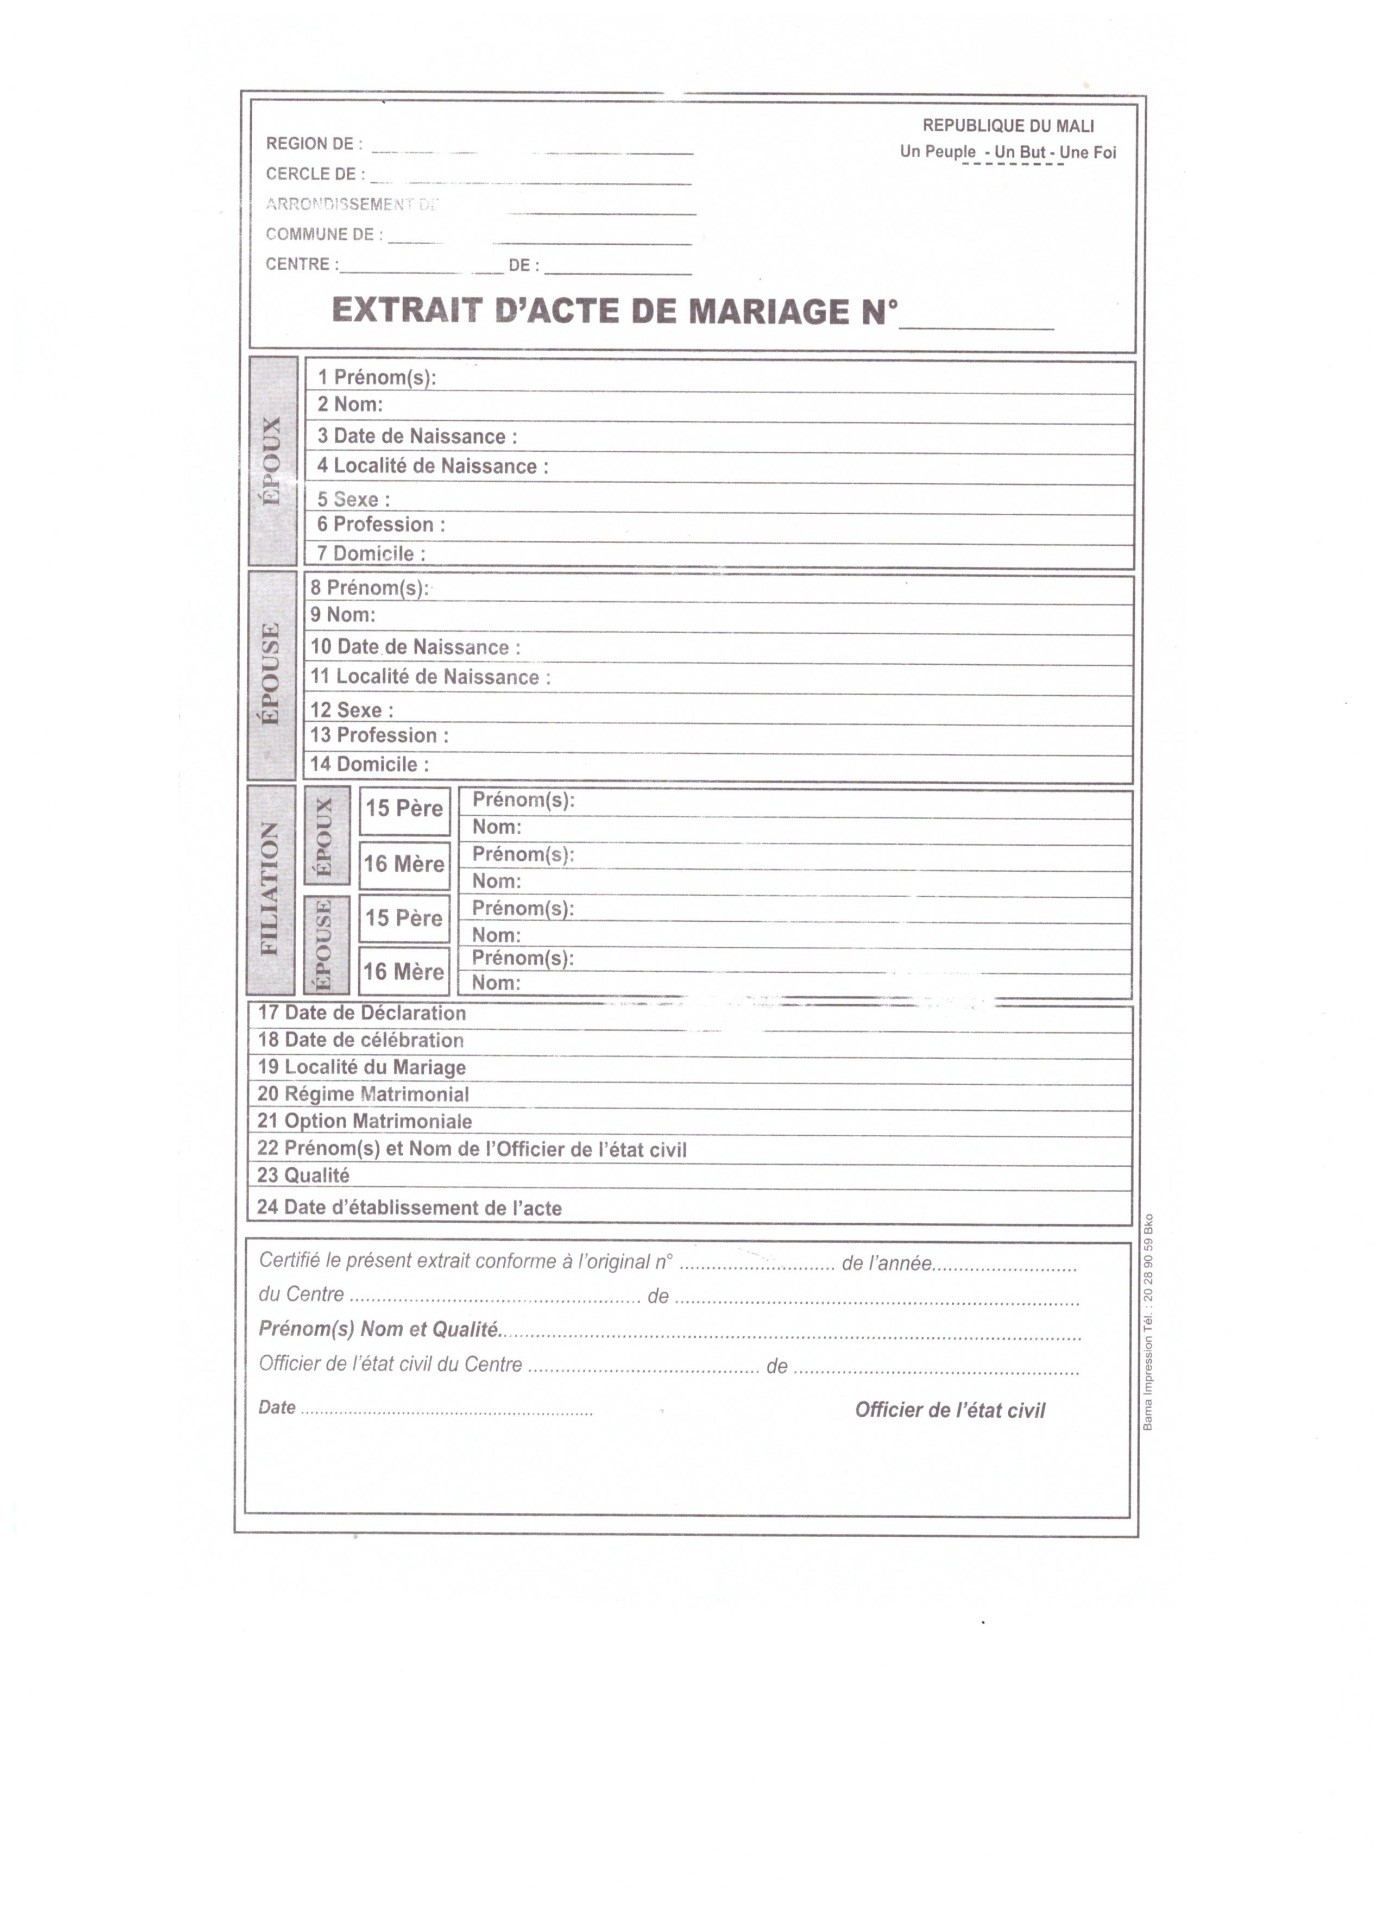 Mali unicef data download sample birth certificate yadclub